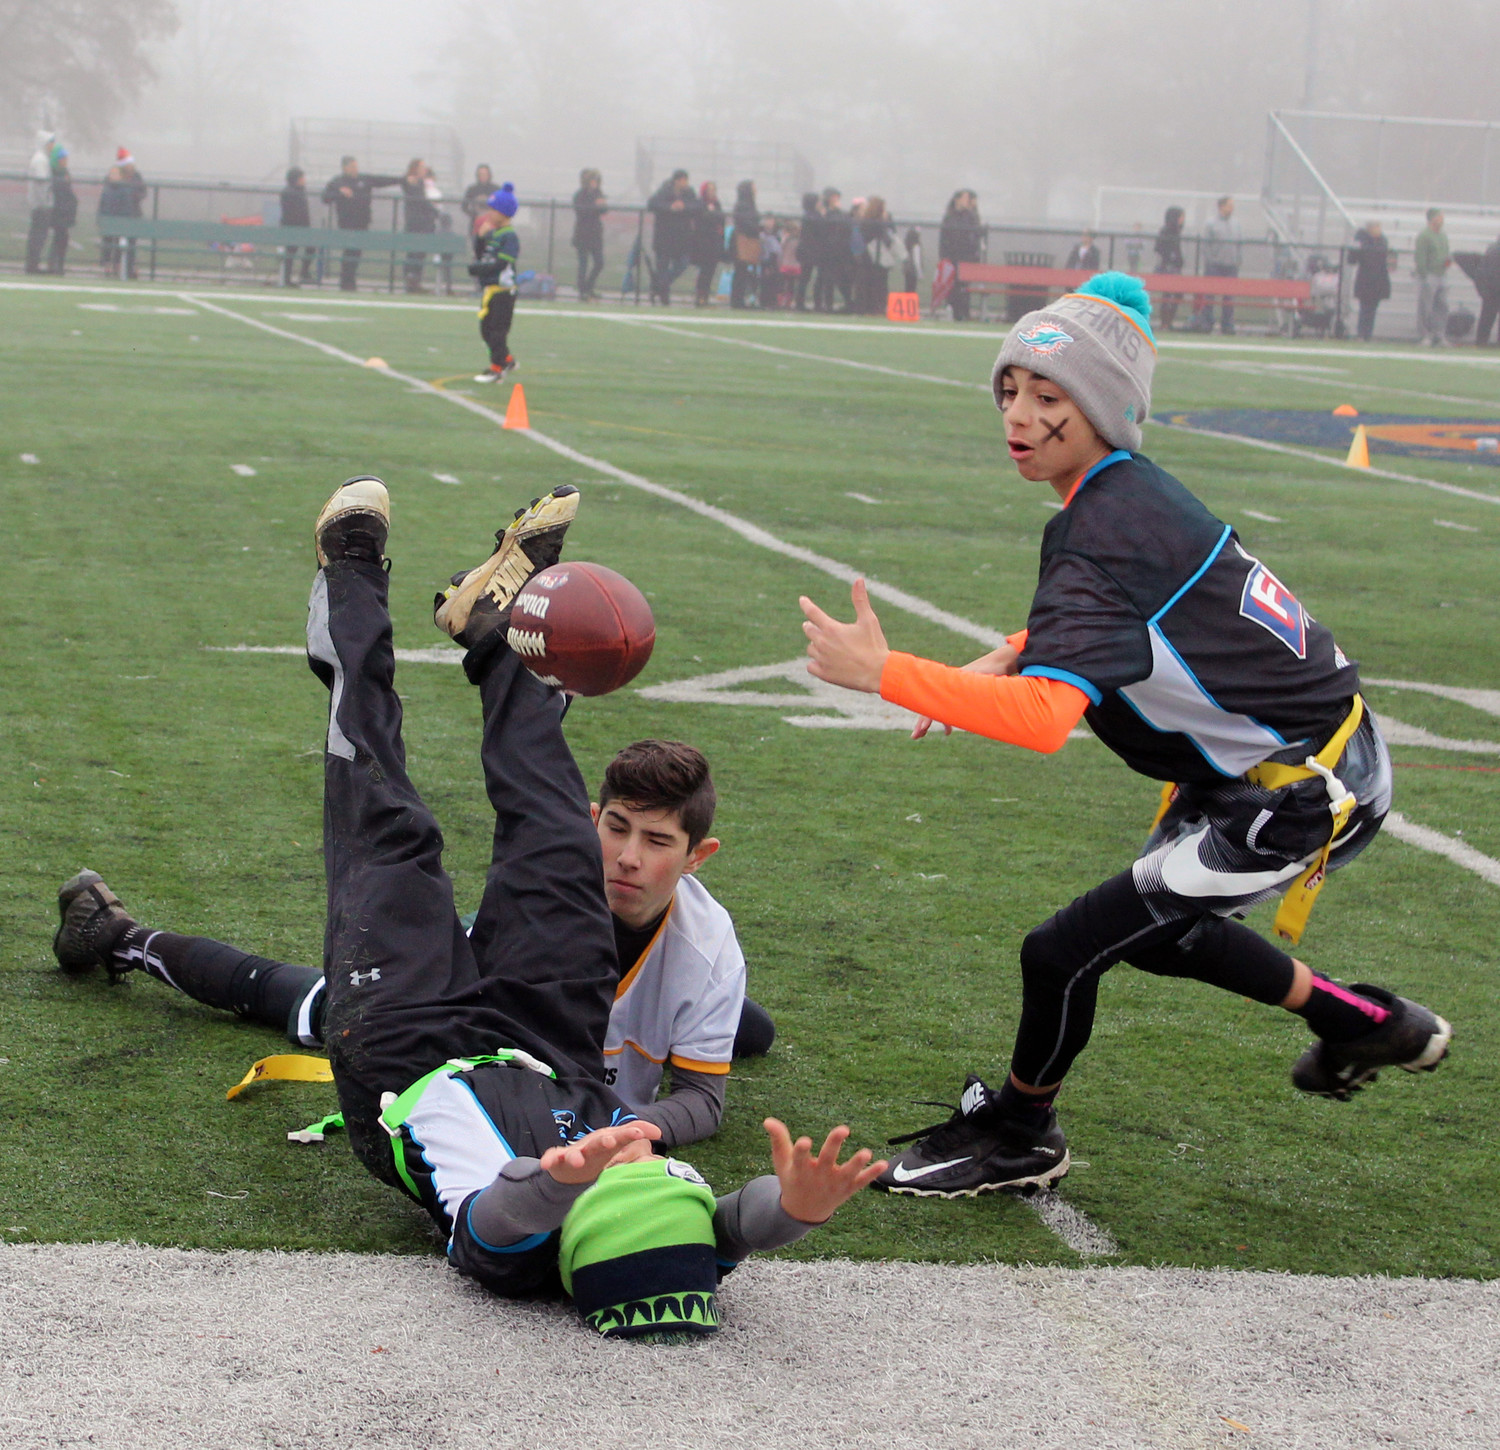 Athletes on both sixth and seventh-grade teams leapt forward to save the football before it went out of bounds.